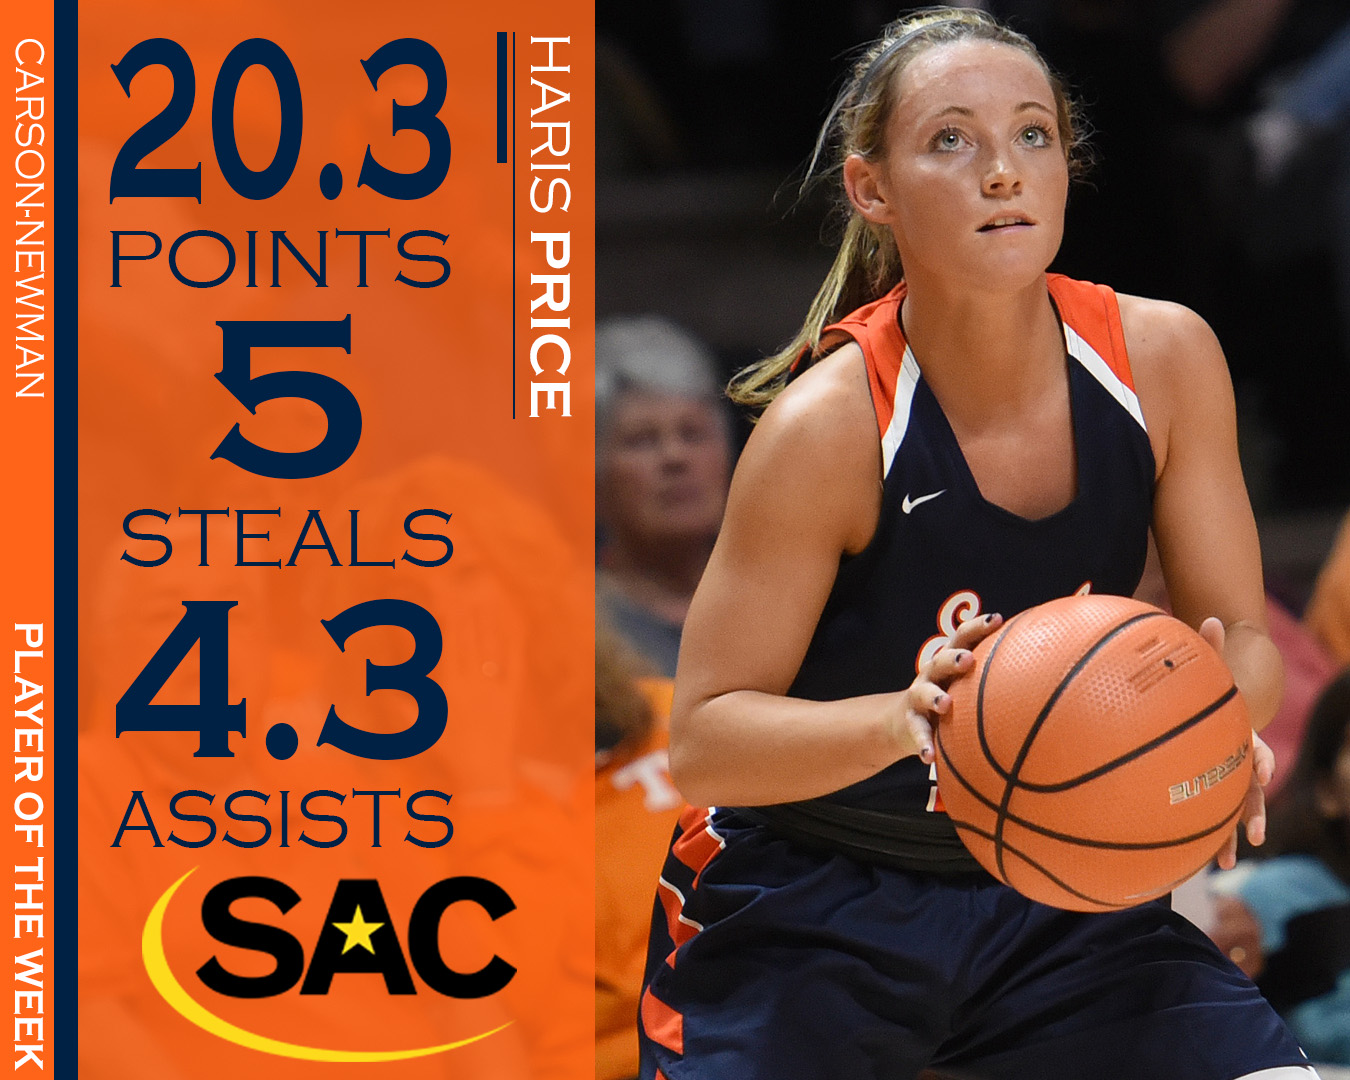 Pilfering Price collects SAC Player of the Week plaudit